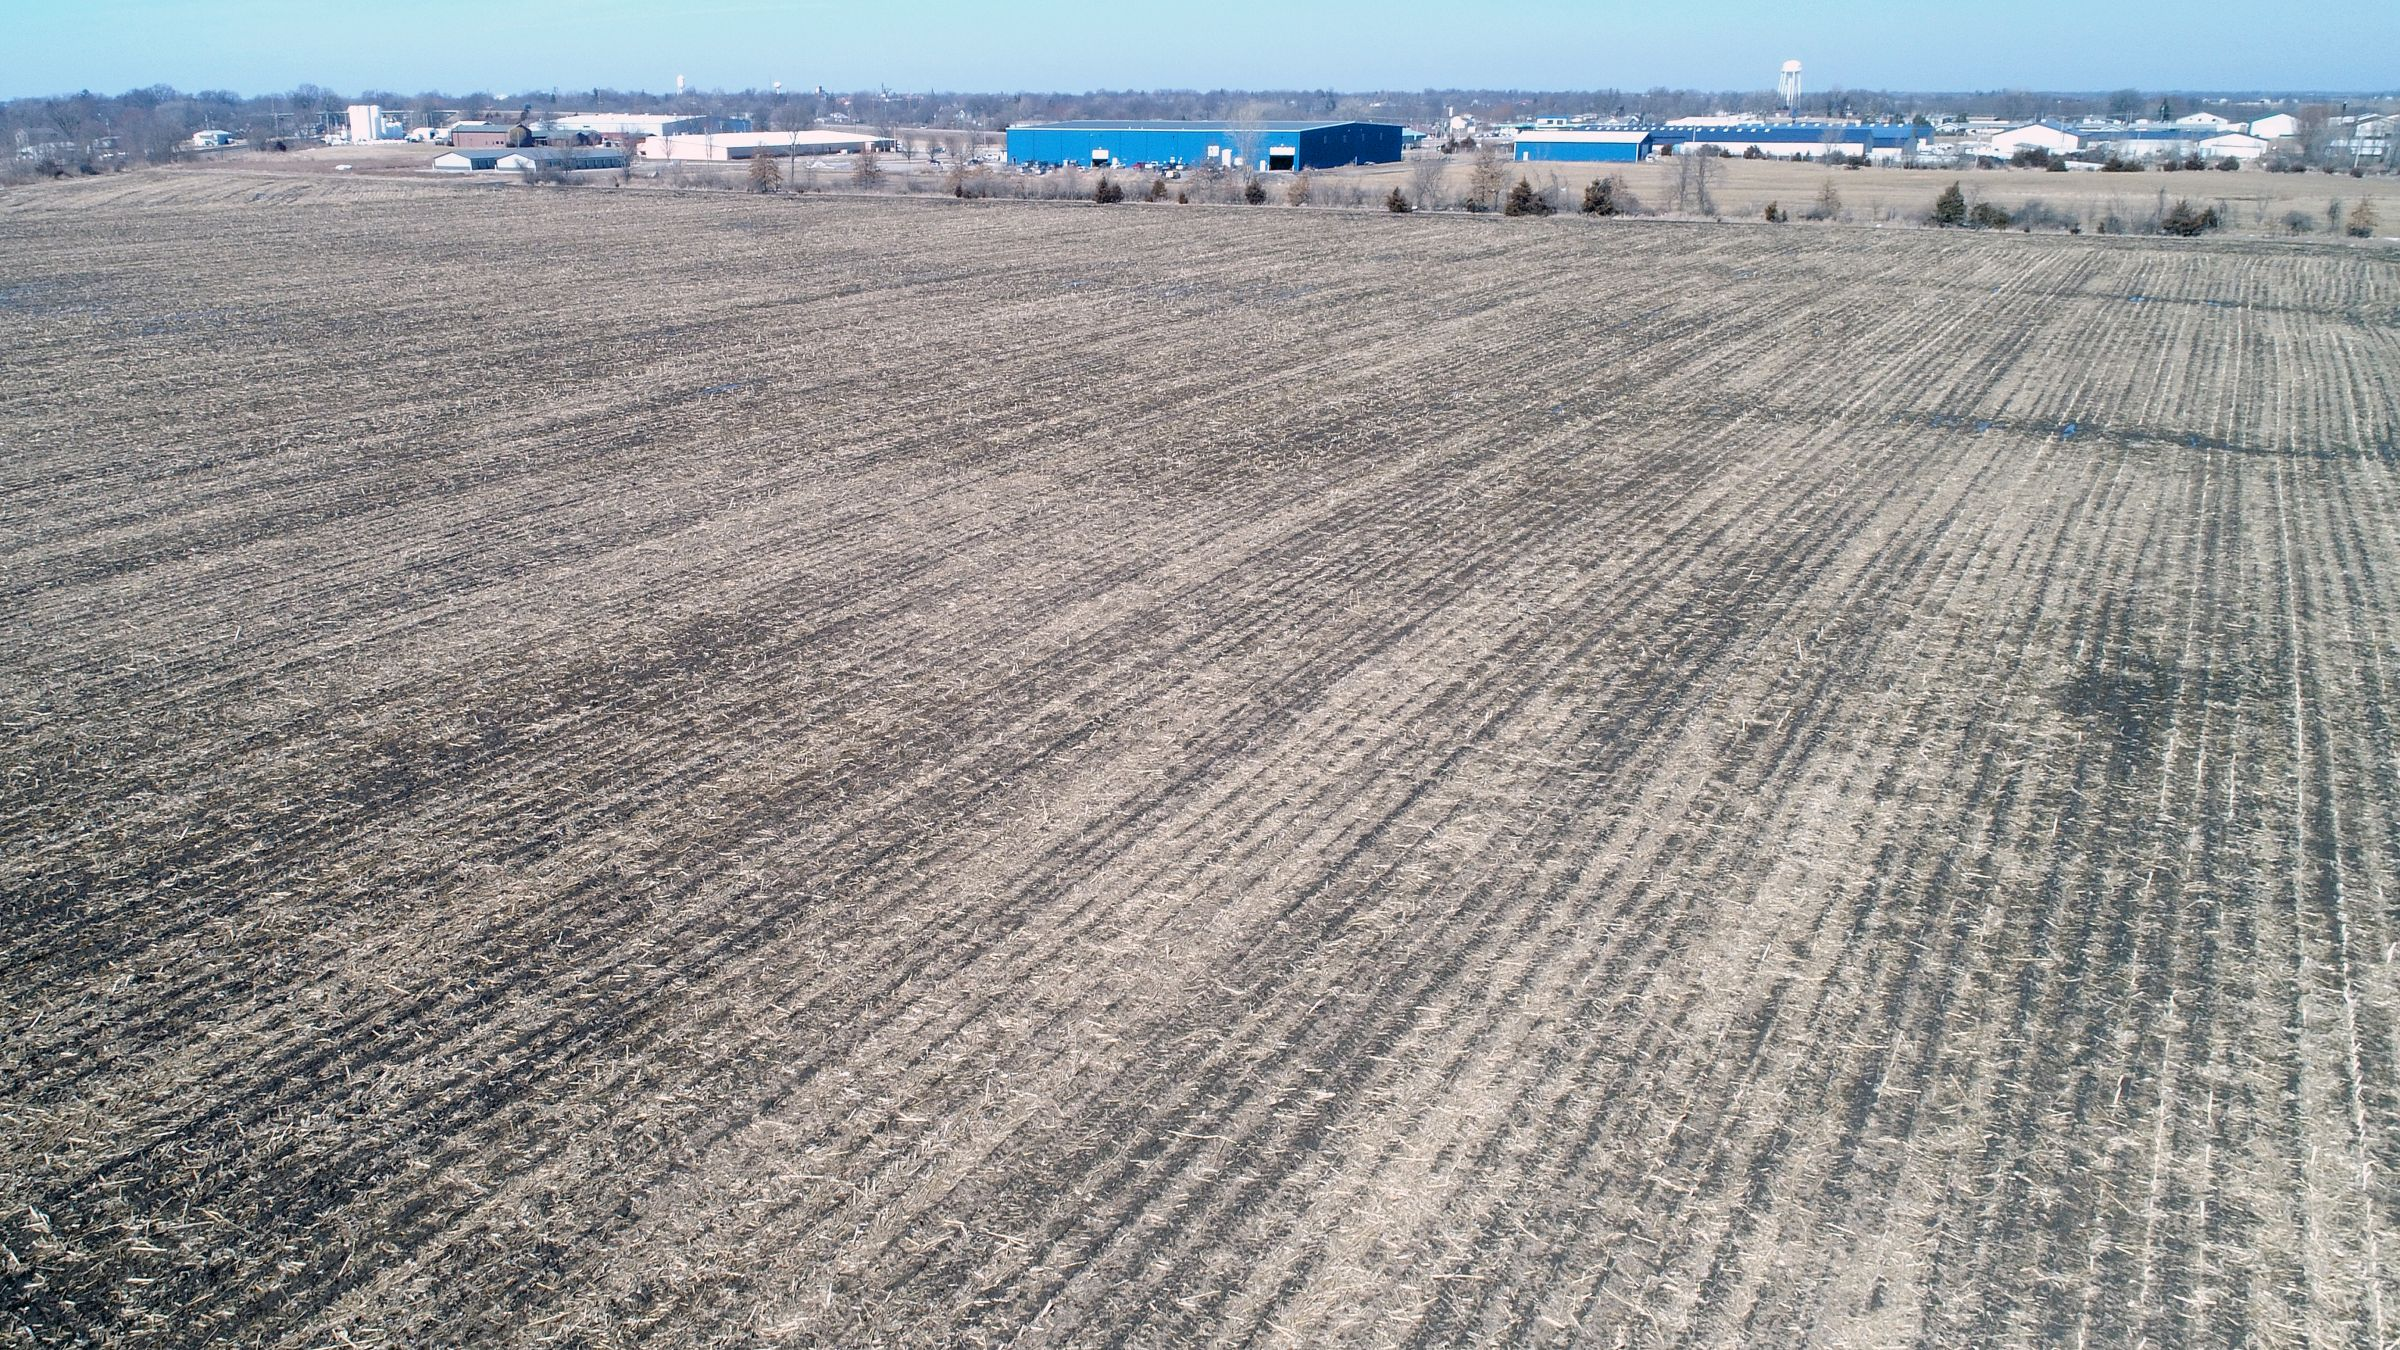 land-lucas-county-iowa-40-acres-listing-number-15394-5-2021-03-05-204339.JPG